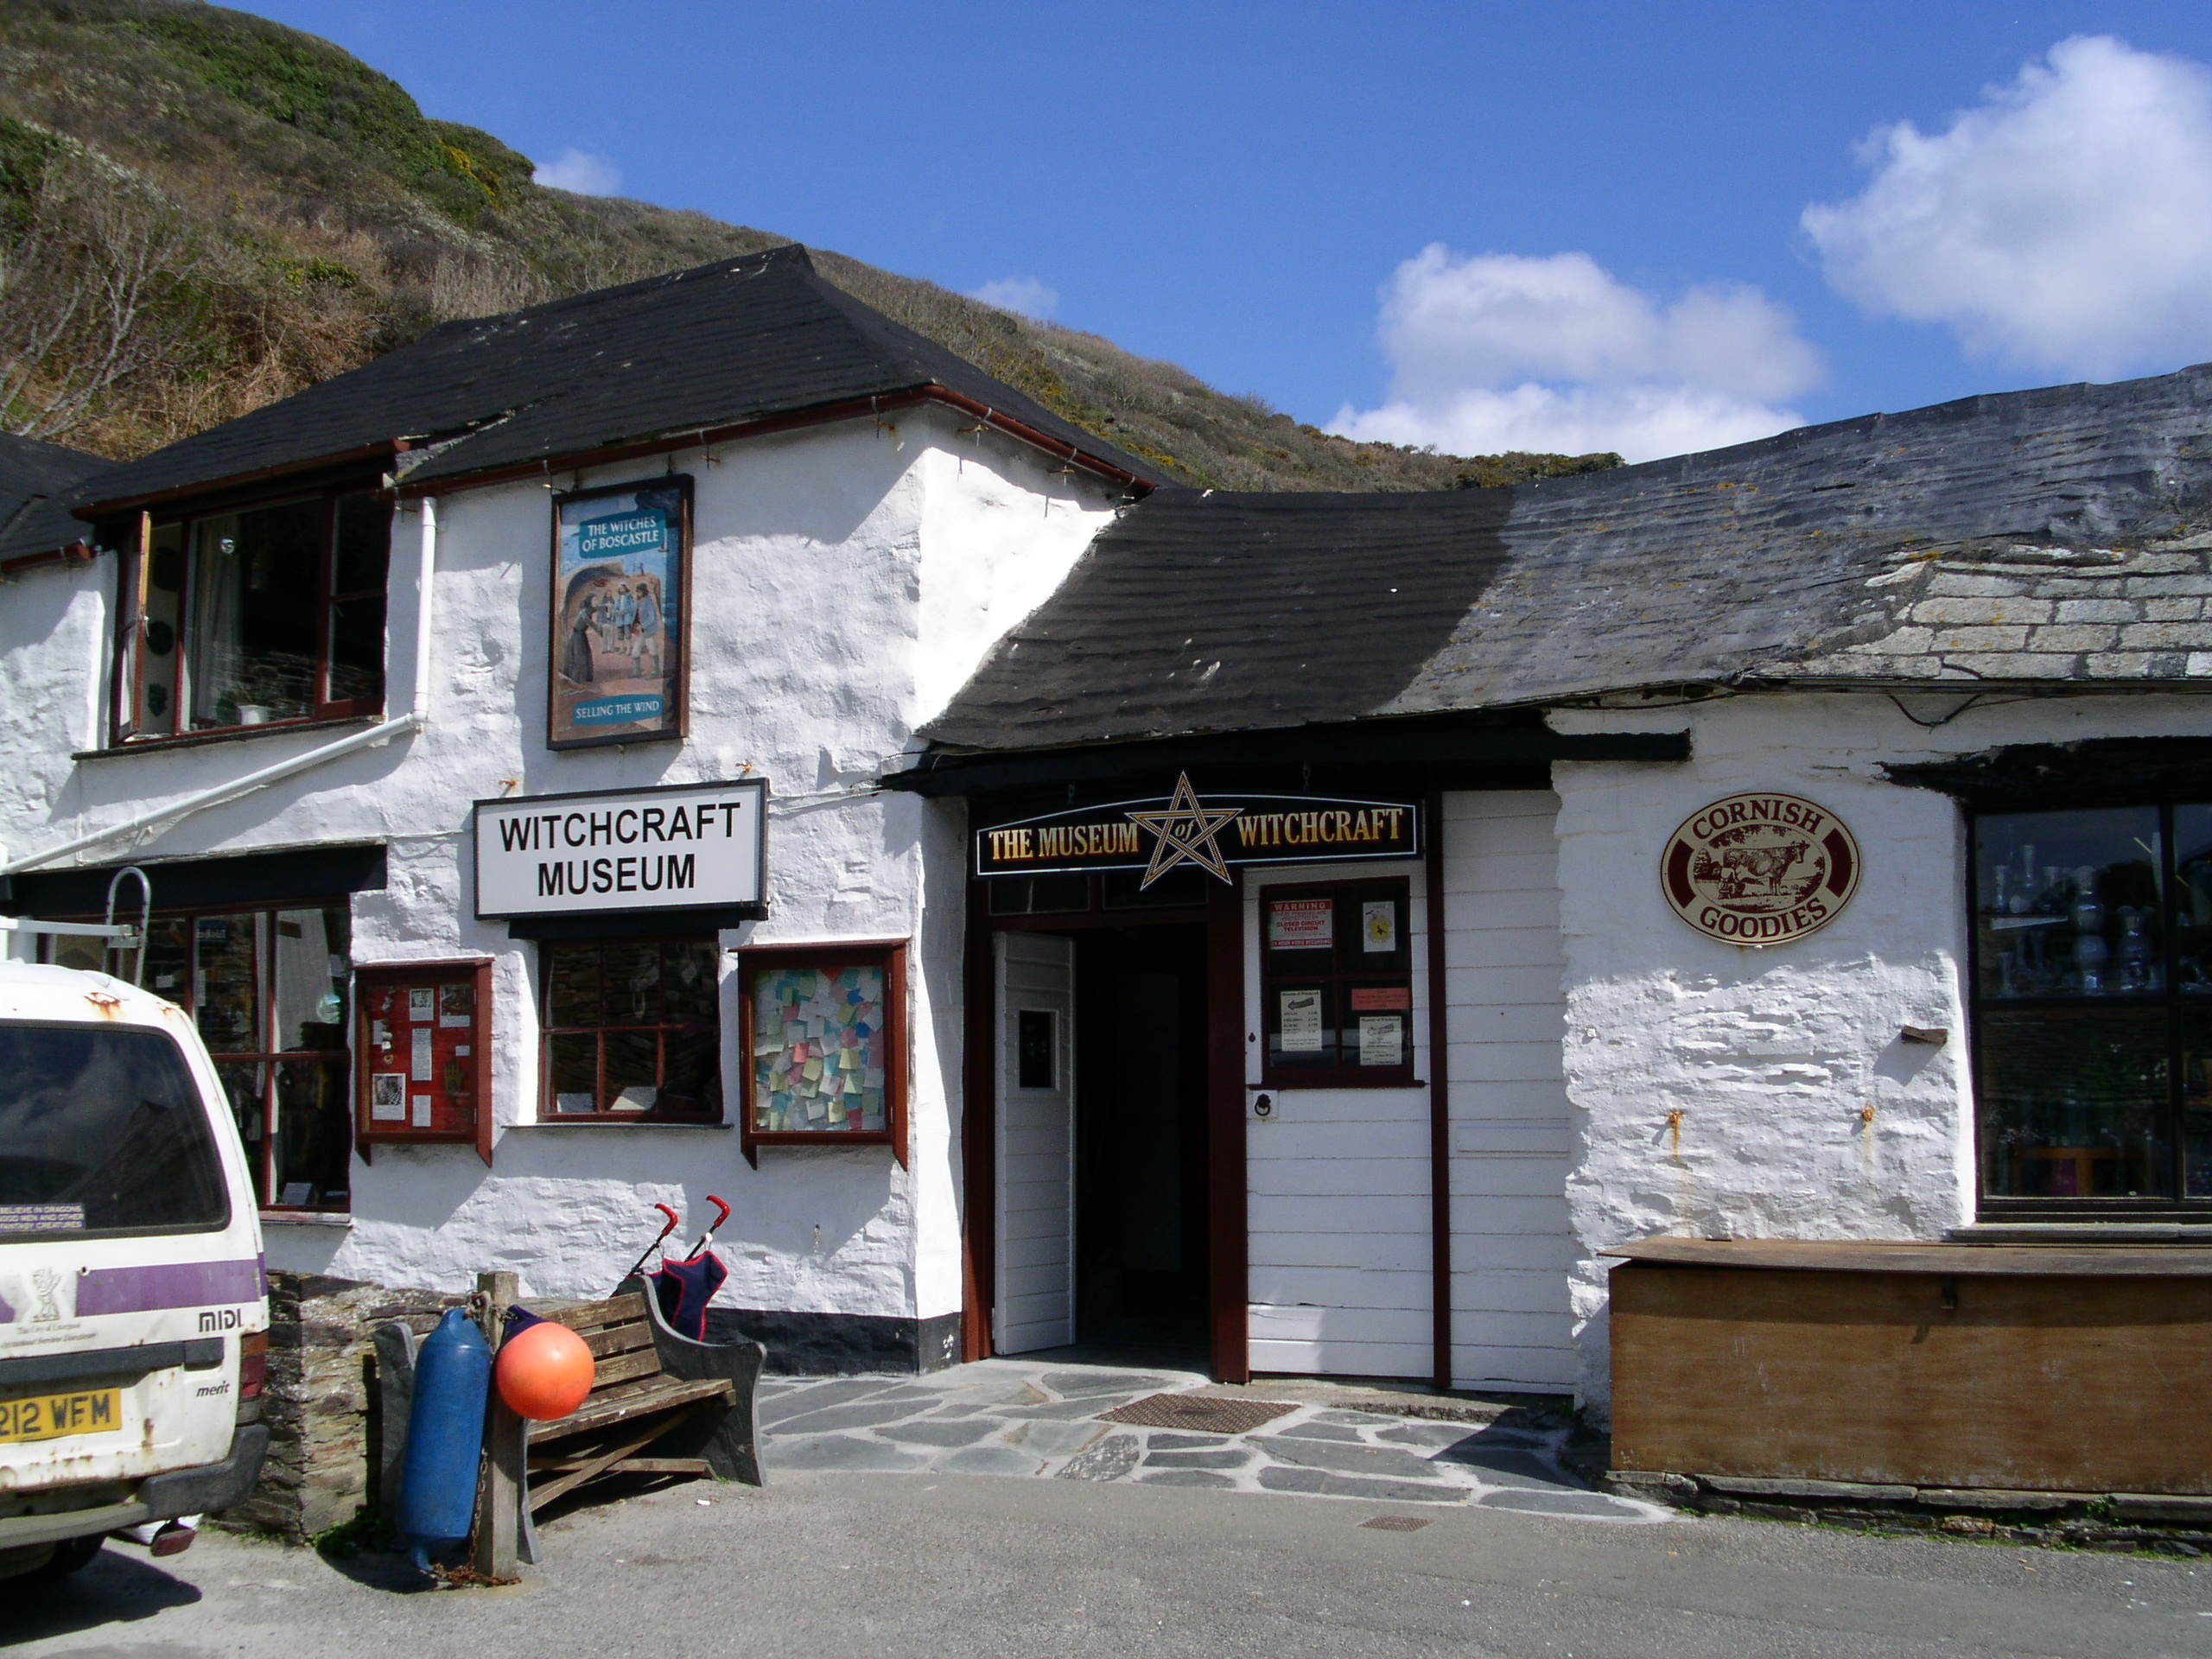 Guide House Cafe